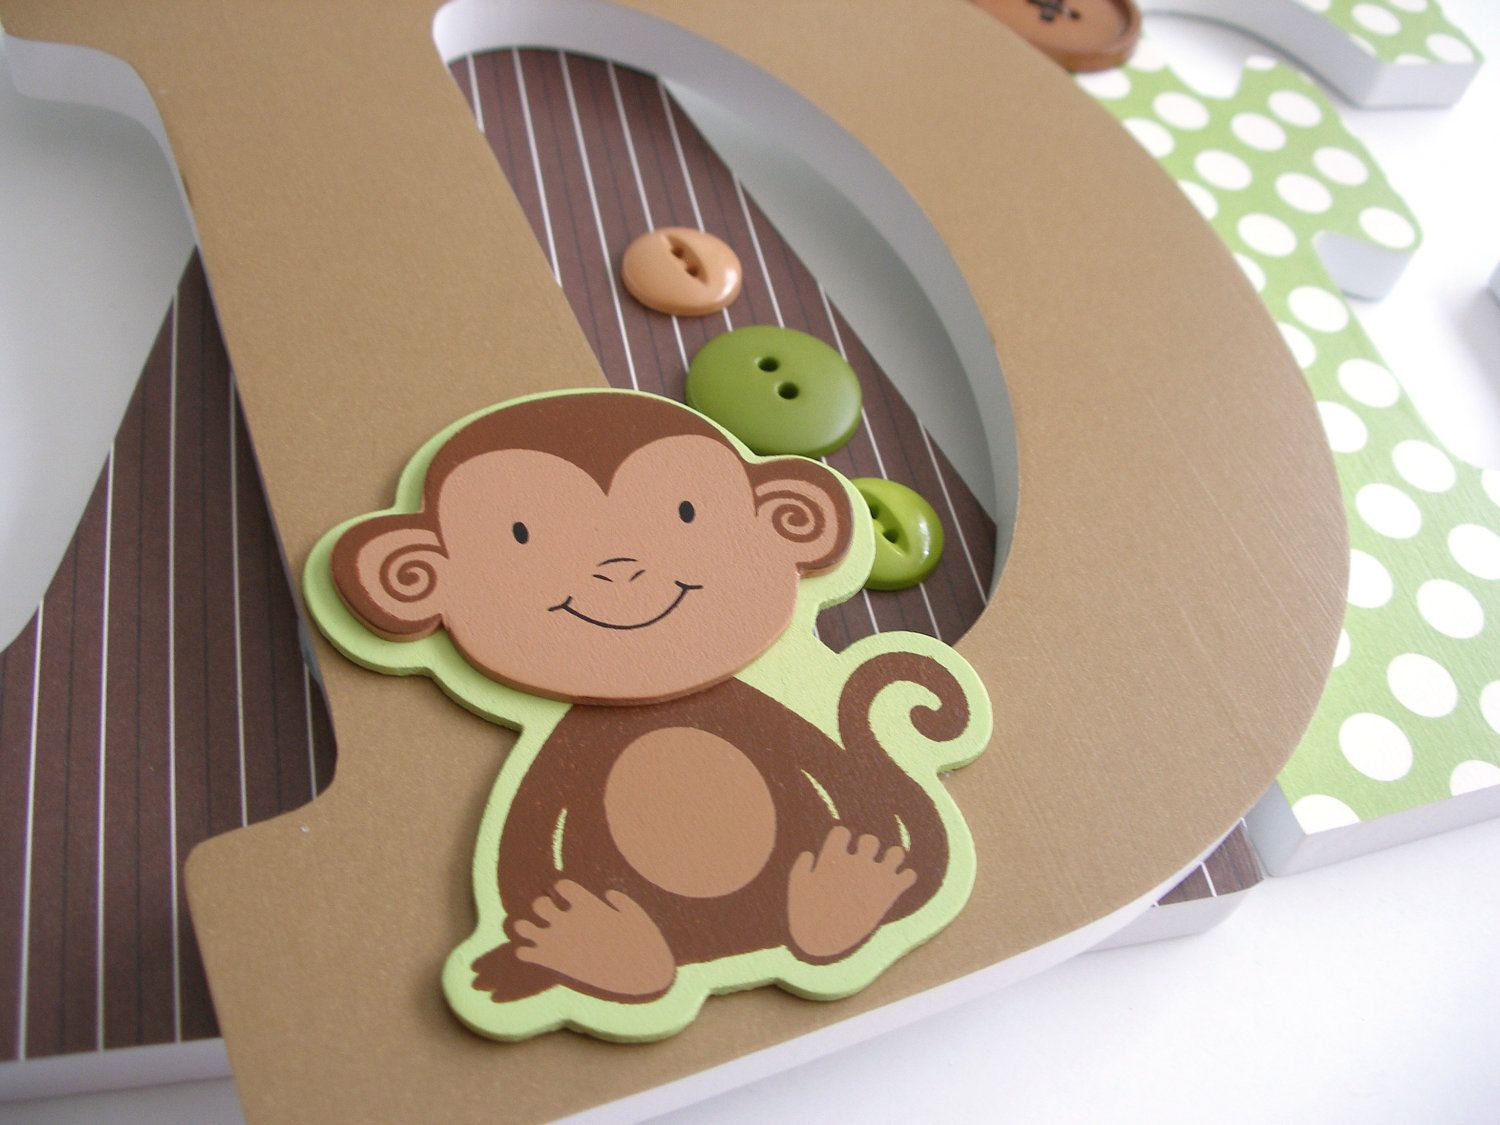 Monkey Bedroom Decorations Monkey Custom Wooden Letters Personalized Nursery Name Daccor Boy